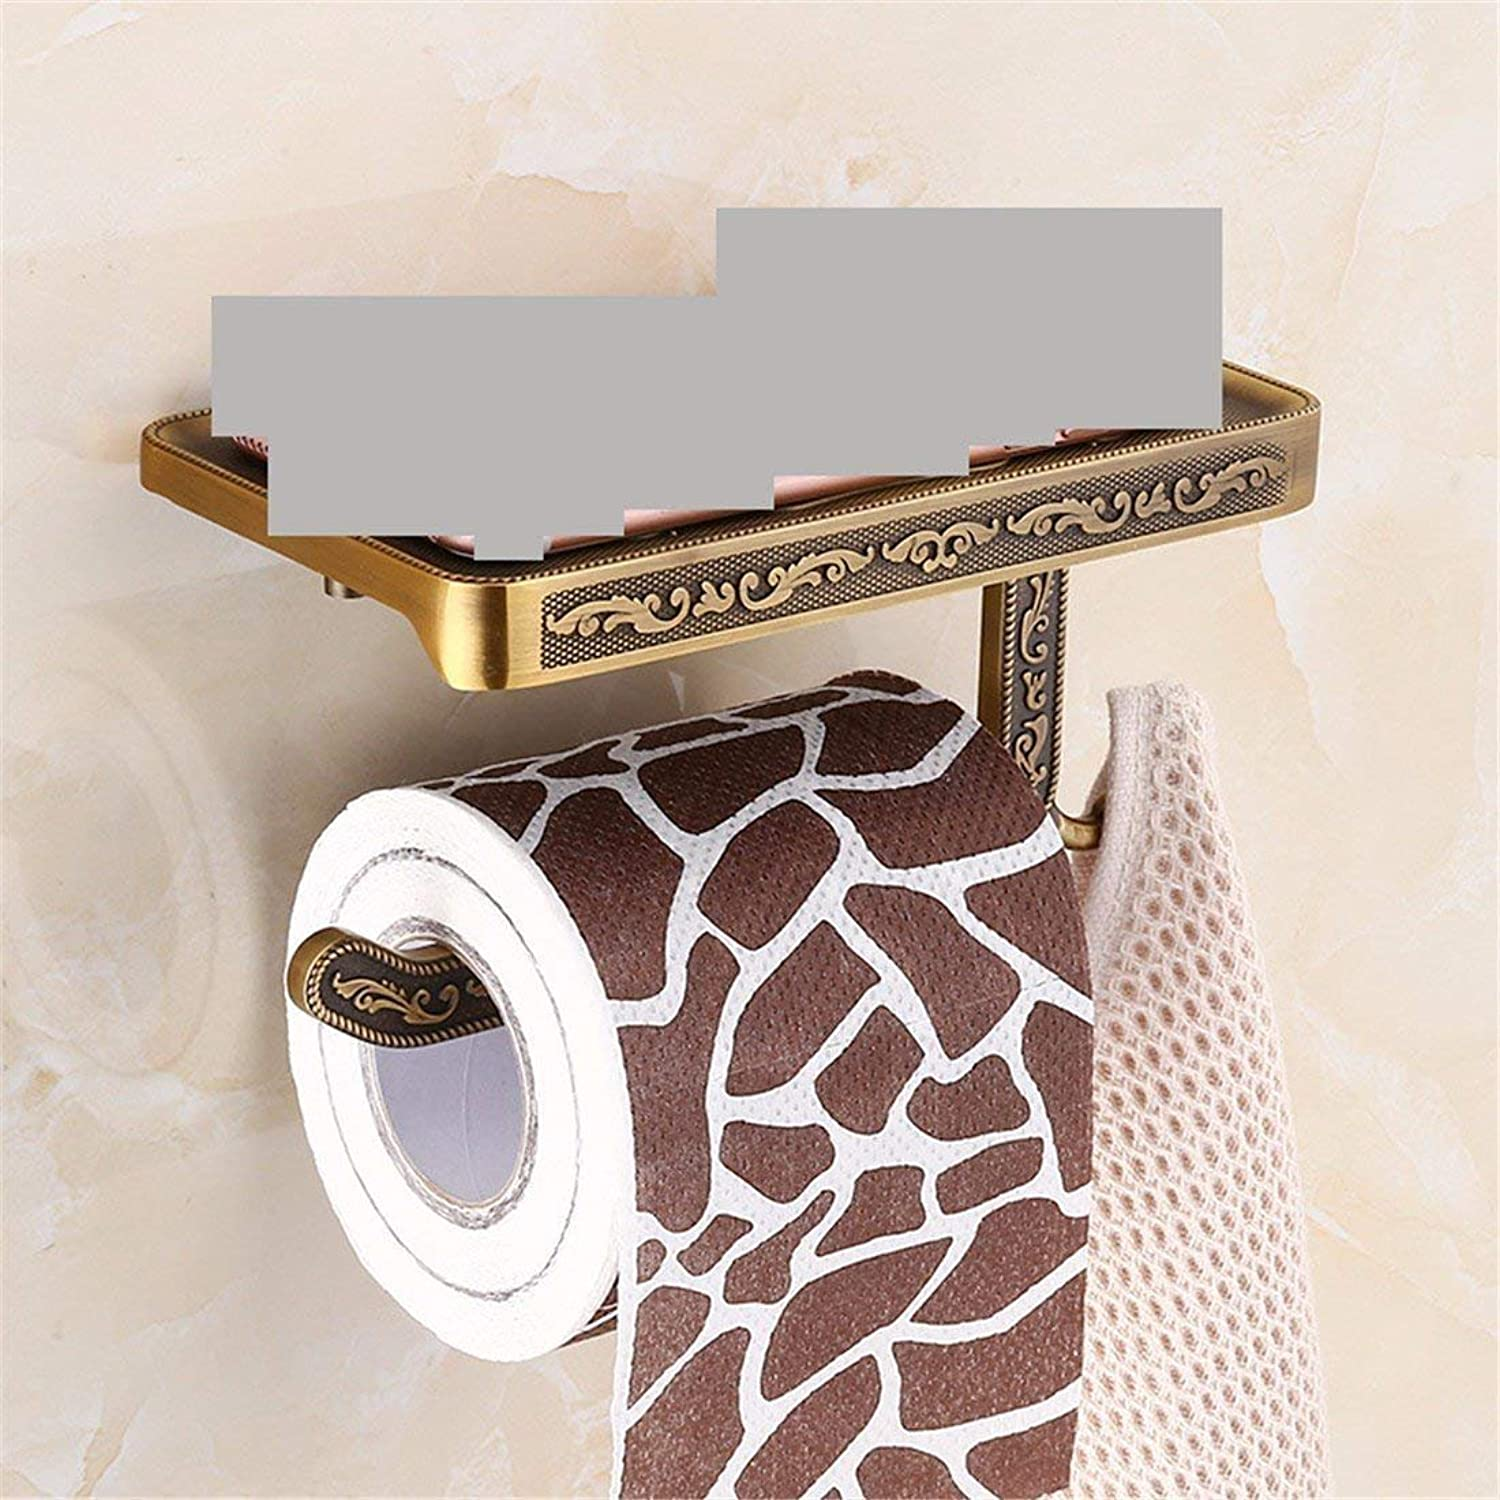 Carved from European Style Former Accessories for Baths to SEC, Function-Folding Wall-Mount Suspension Toilet Paper,B Rack